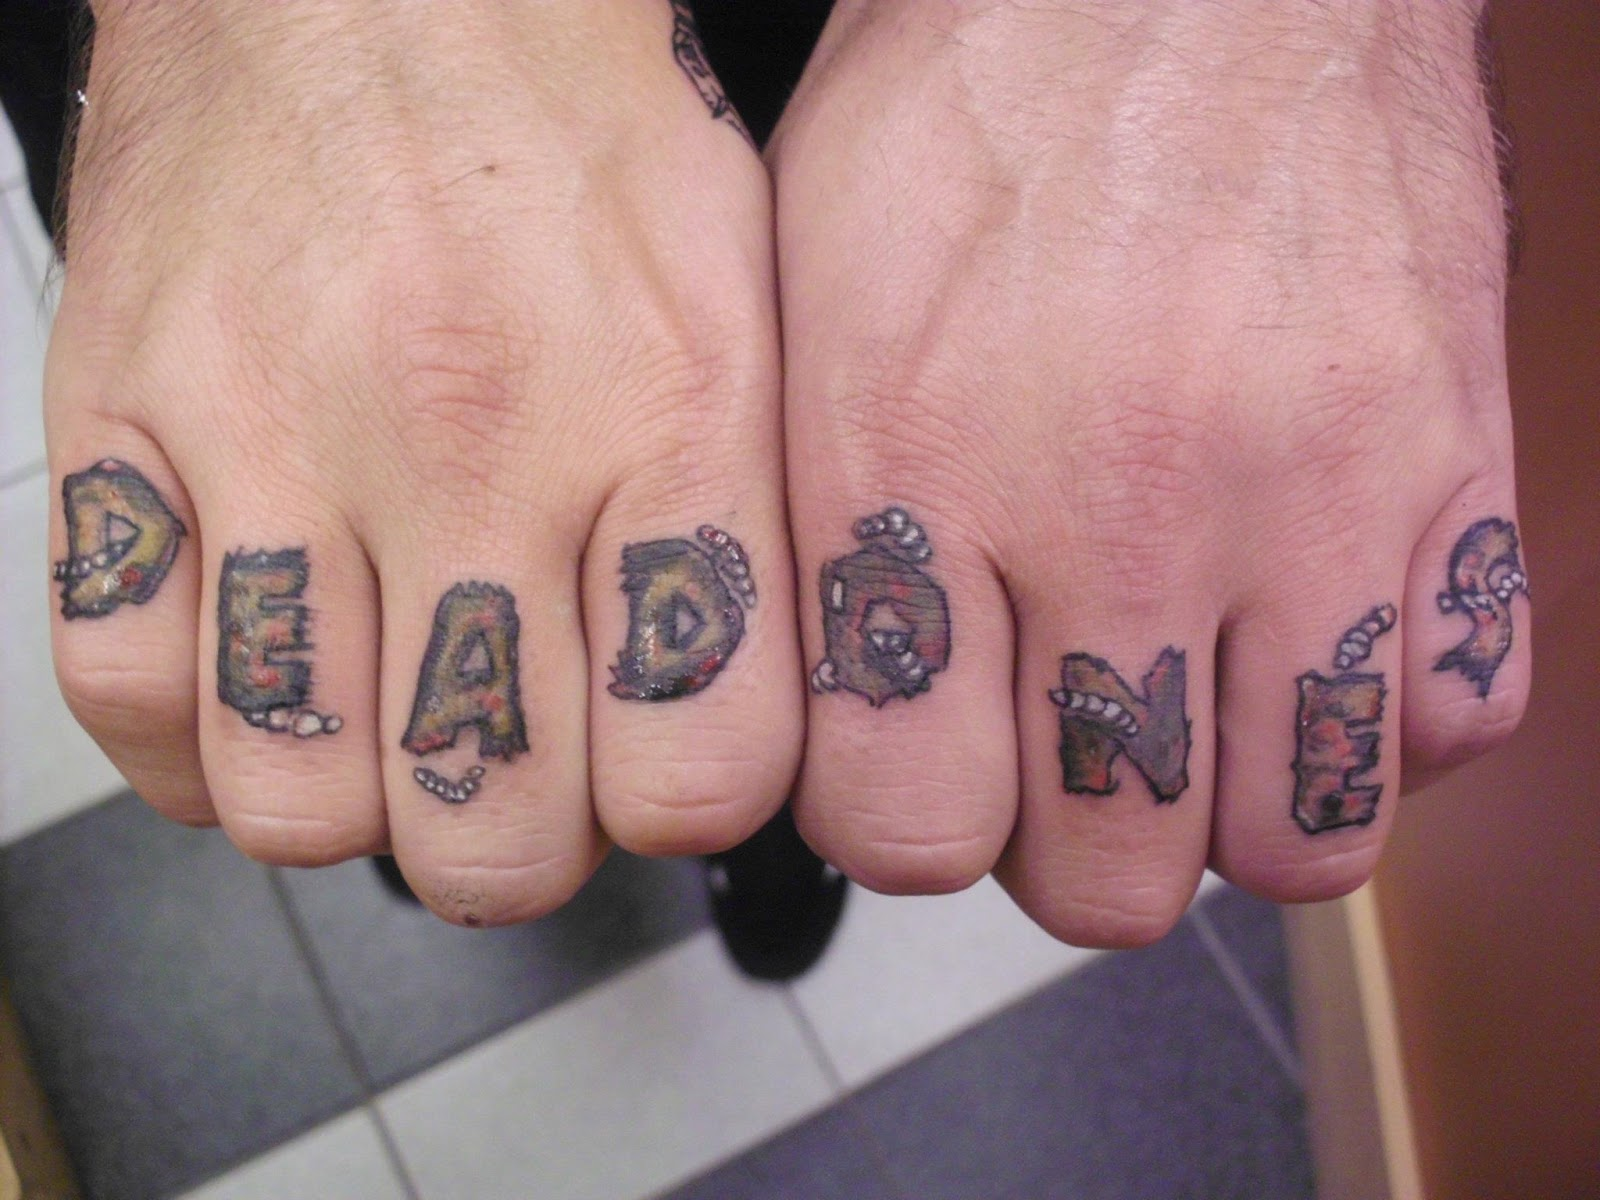 Finger Tattoos Are Great Just Know Its Usually Going To Need A Touch